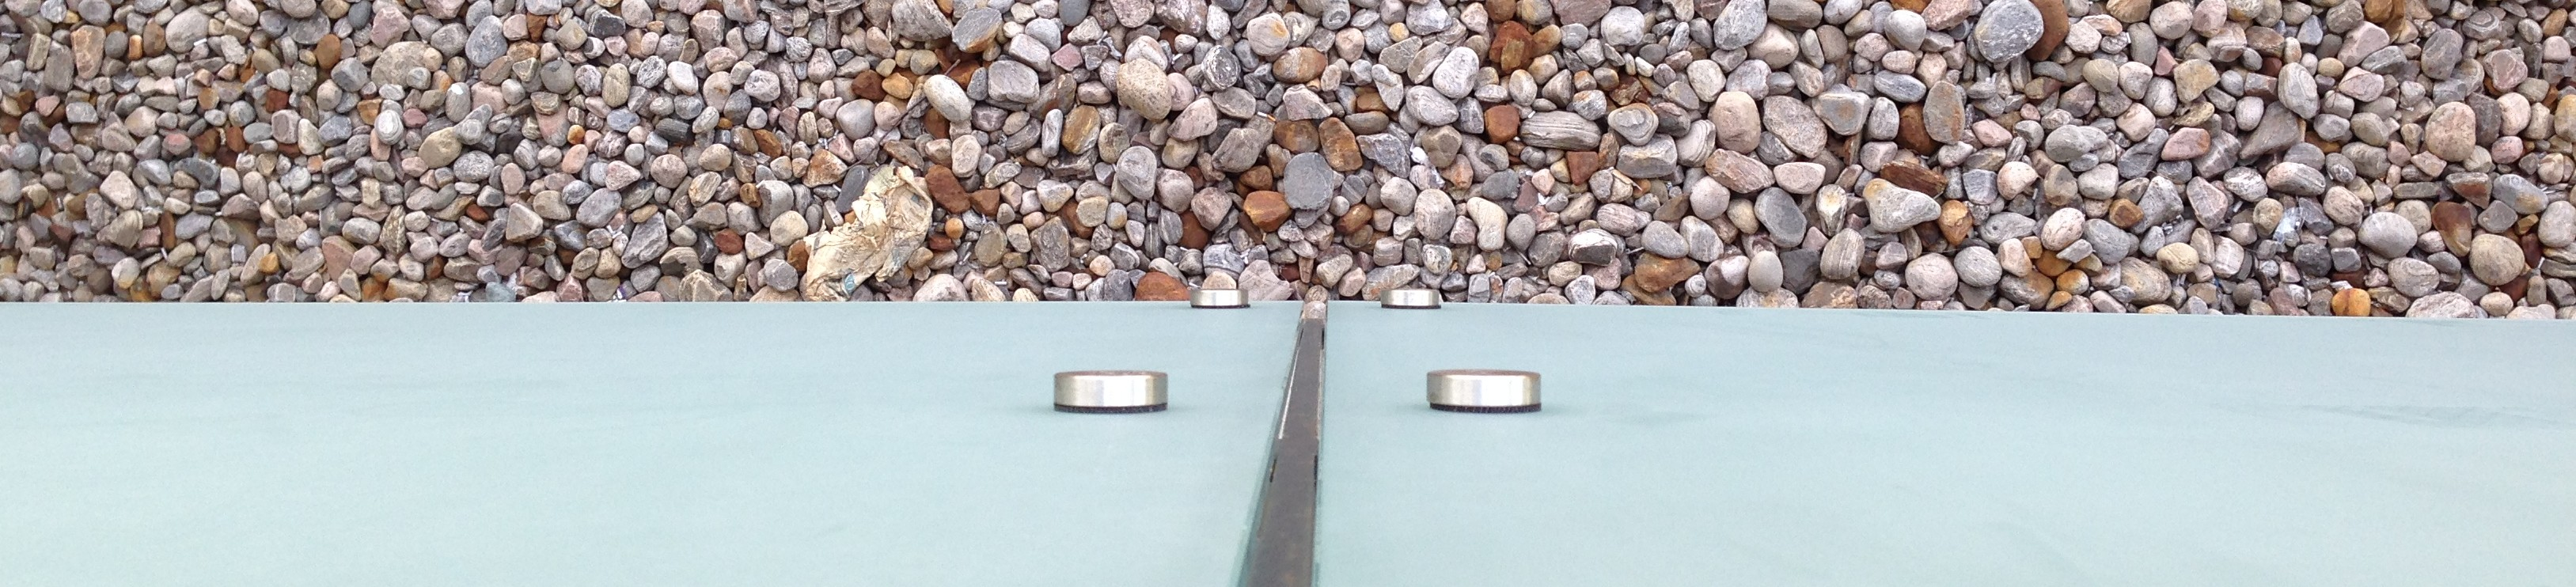 Gravel and glass